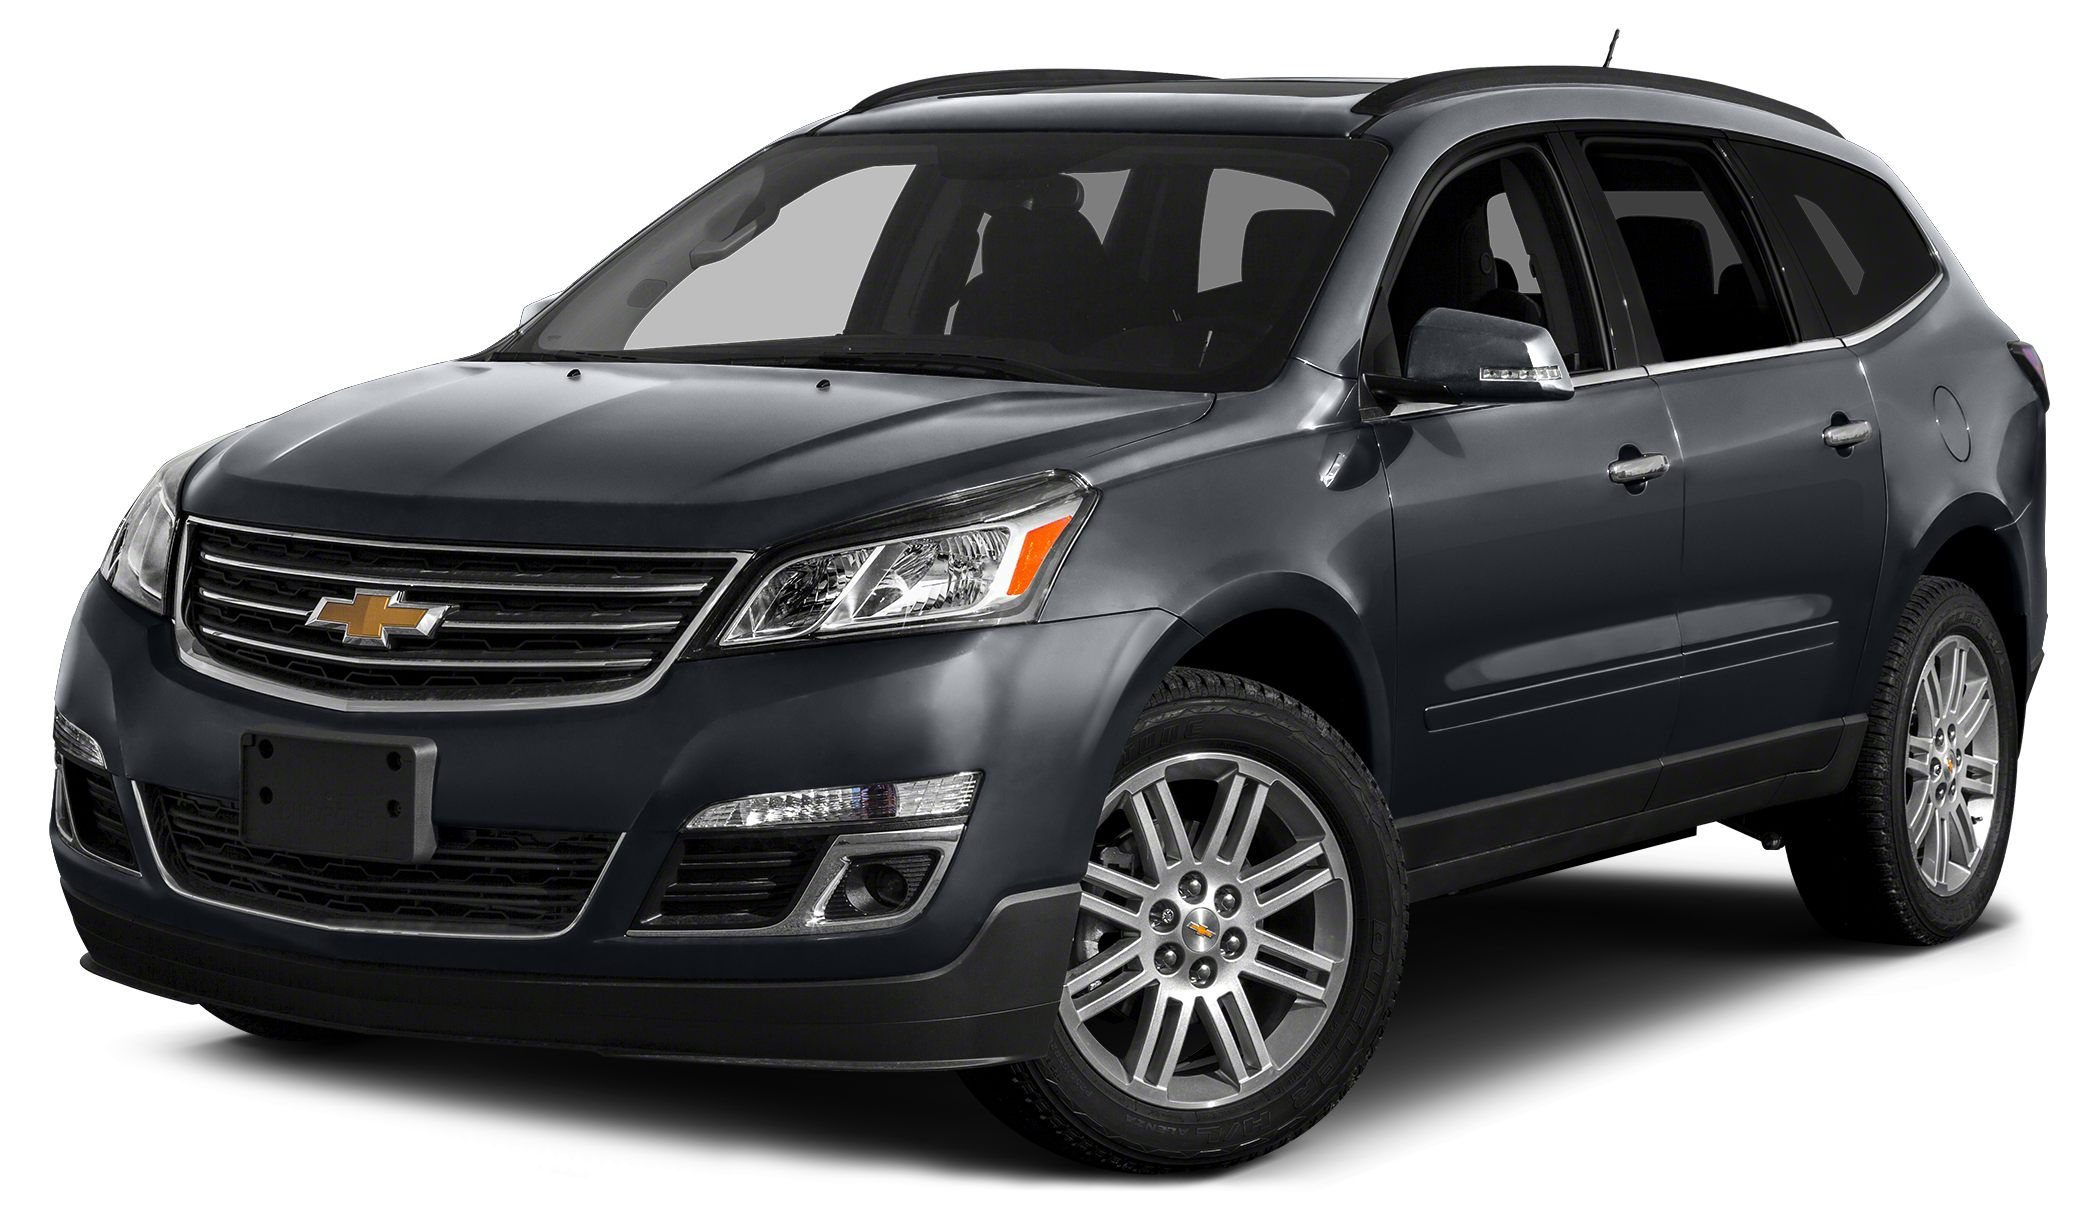 2014 Chevrolet Traverse LT w1LT CARFAX 1-Owner LOW MILES - 10173 FUEL EFFICIENT 24 MPG Hwy17